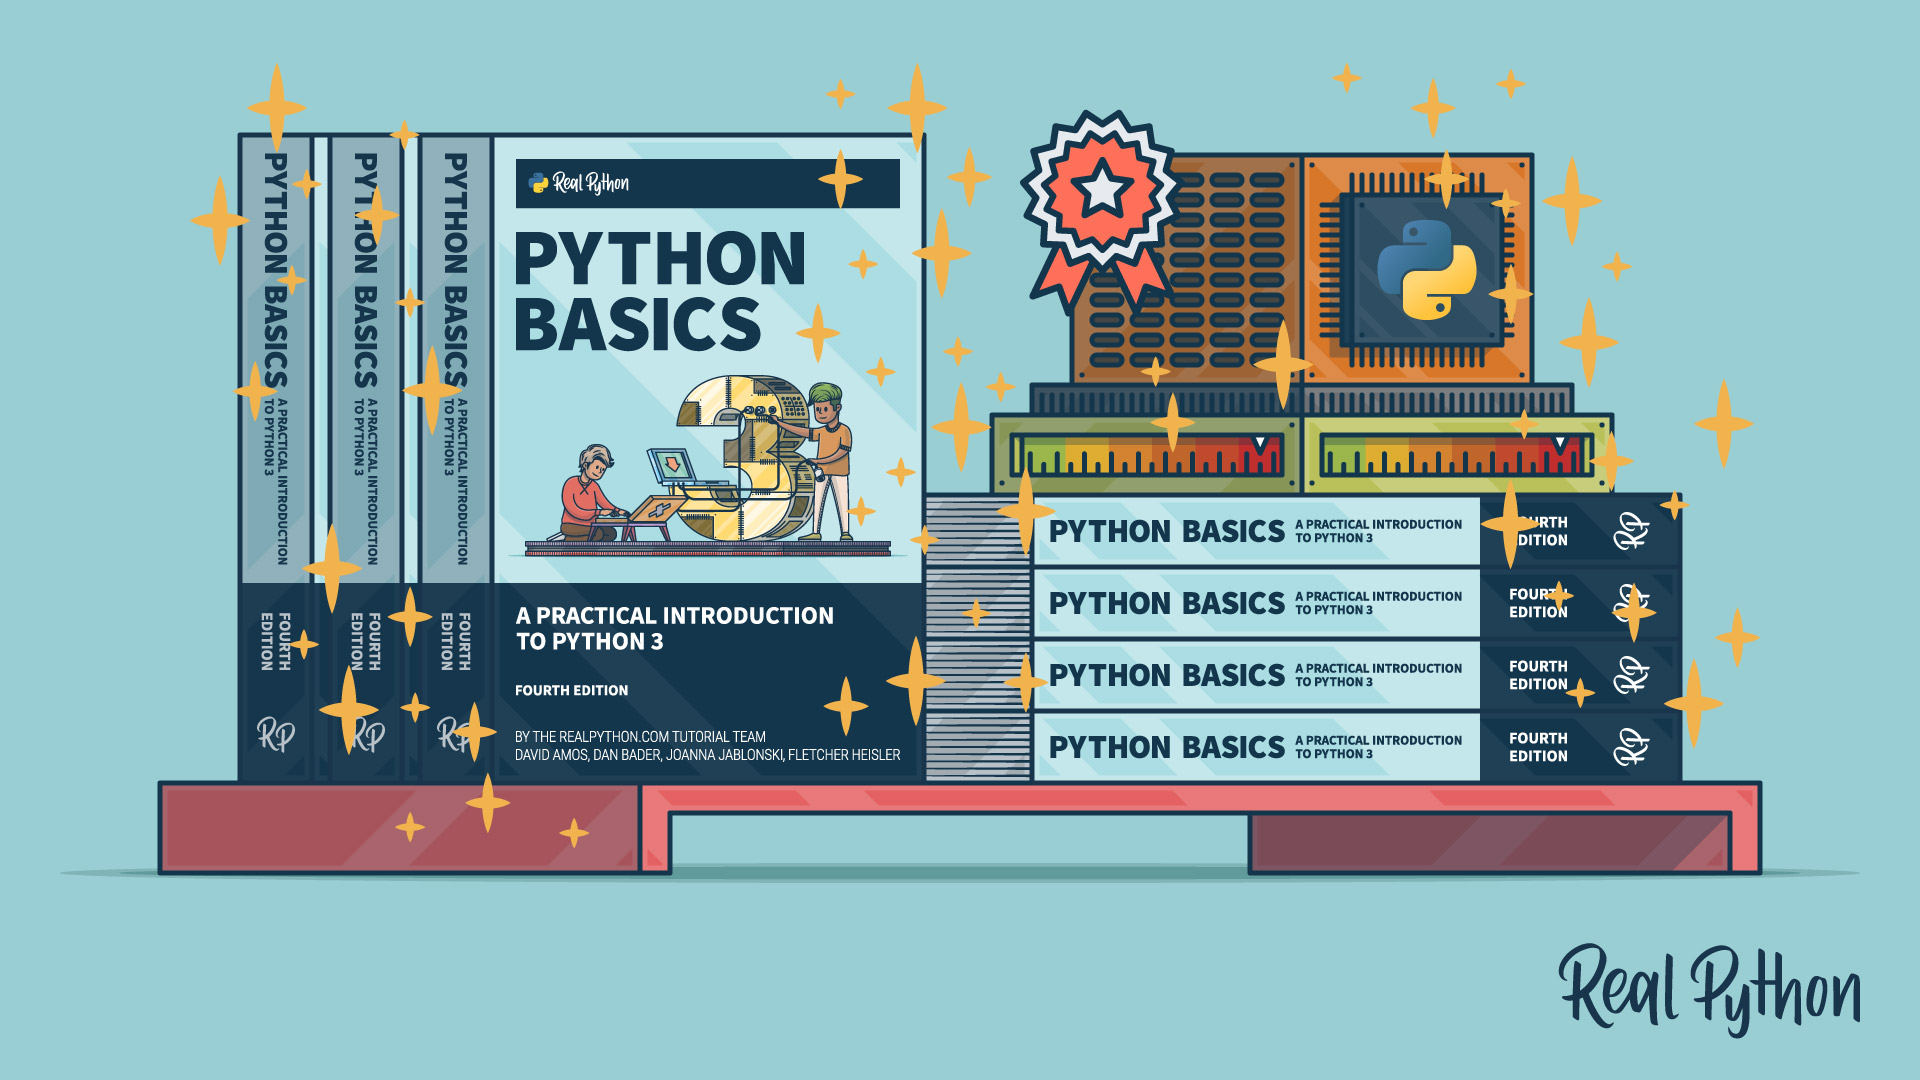 Python Basics: Paperback Now Available!